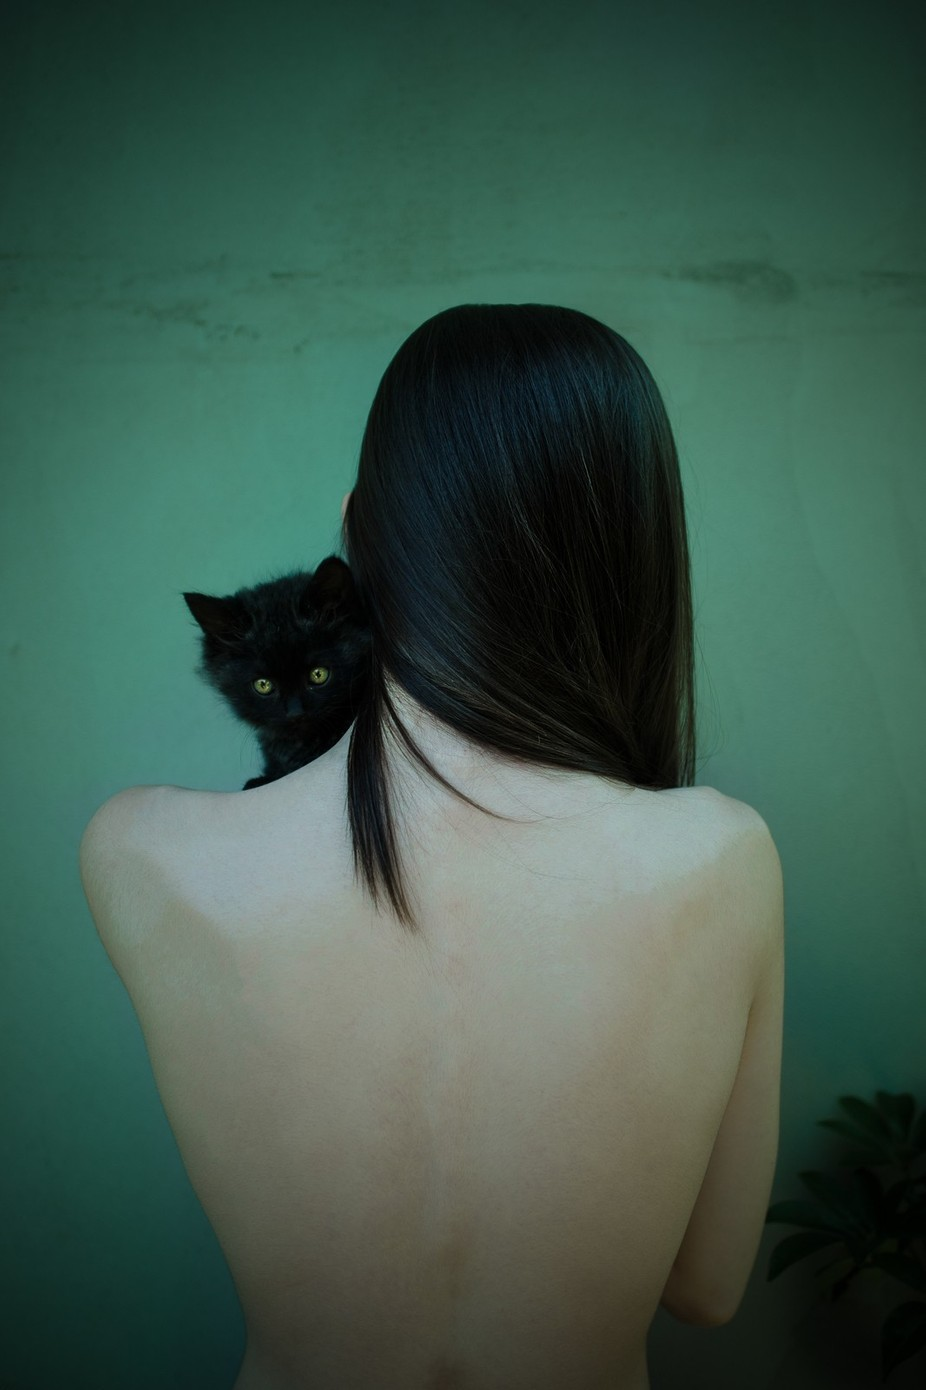 The girl and the cat by doina-domenicacojocaru - Feline Beauty Photo Contest